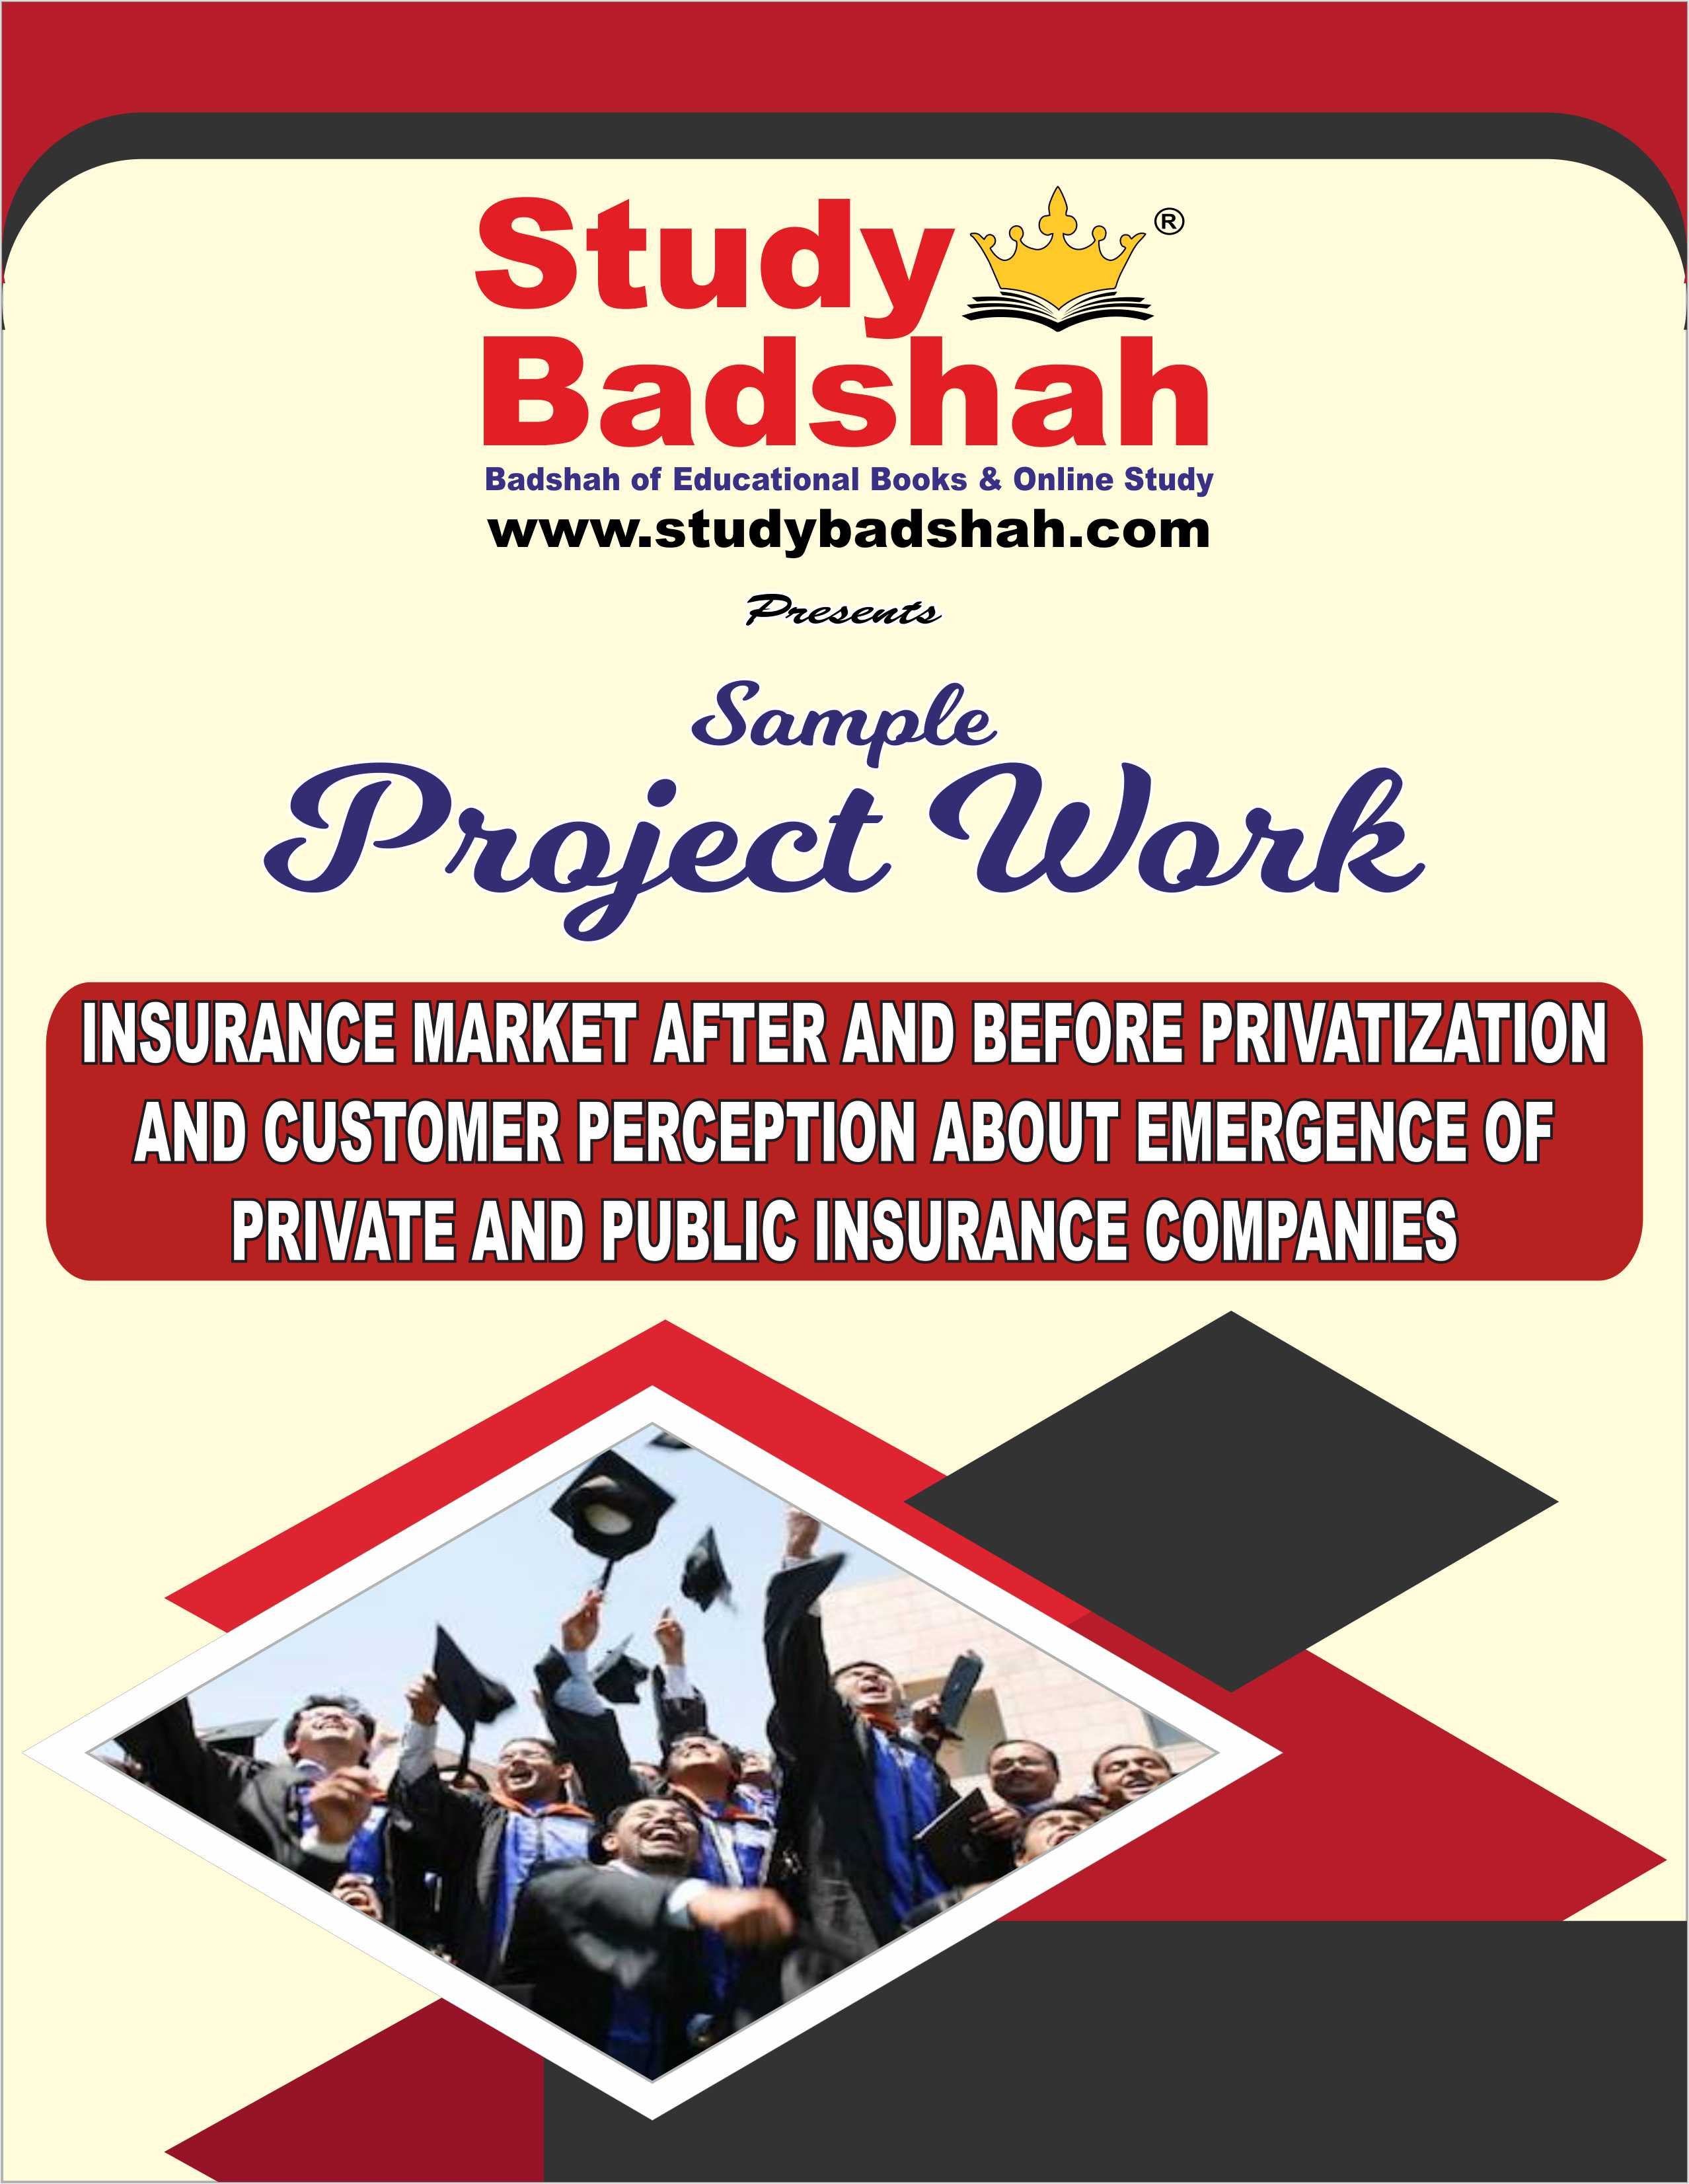 INSURANCE MARKET AFTER AND BEFORE PRIVATIZATION